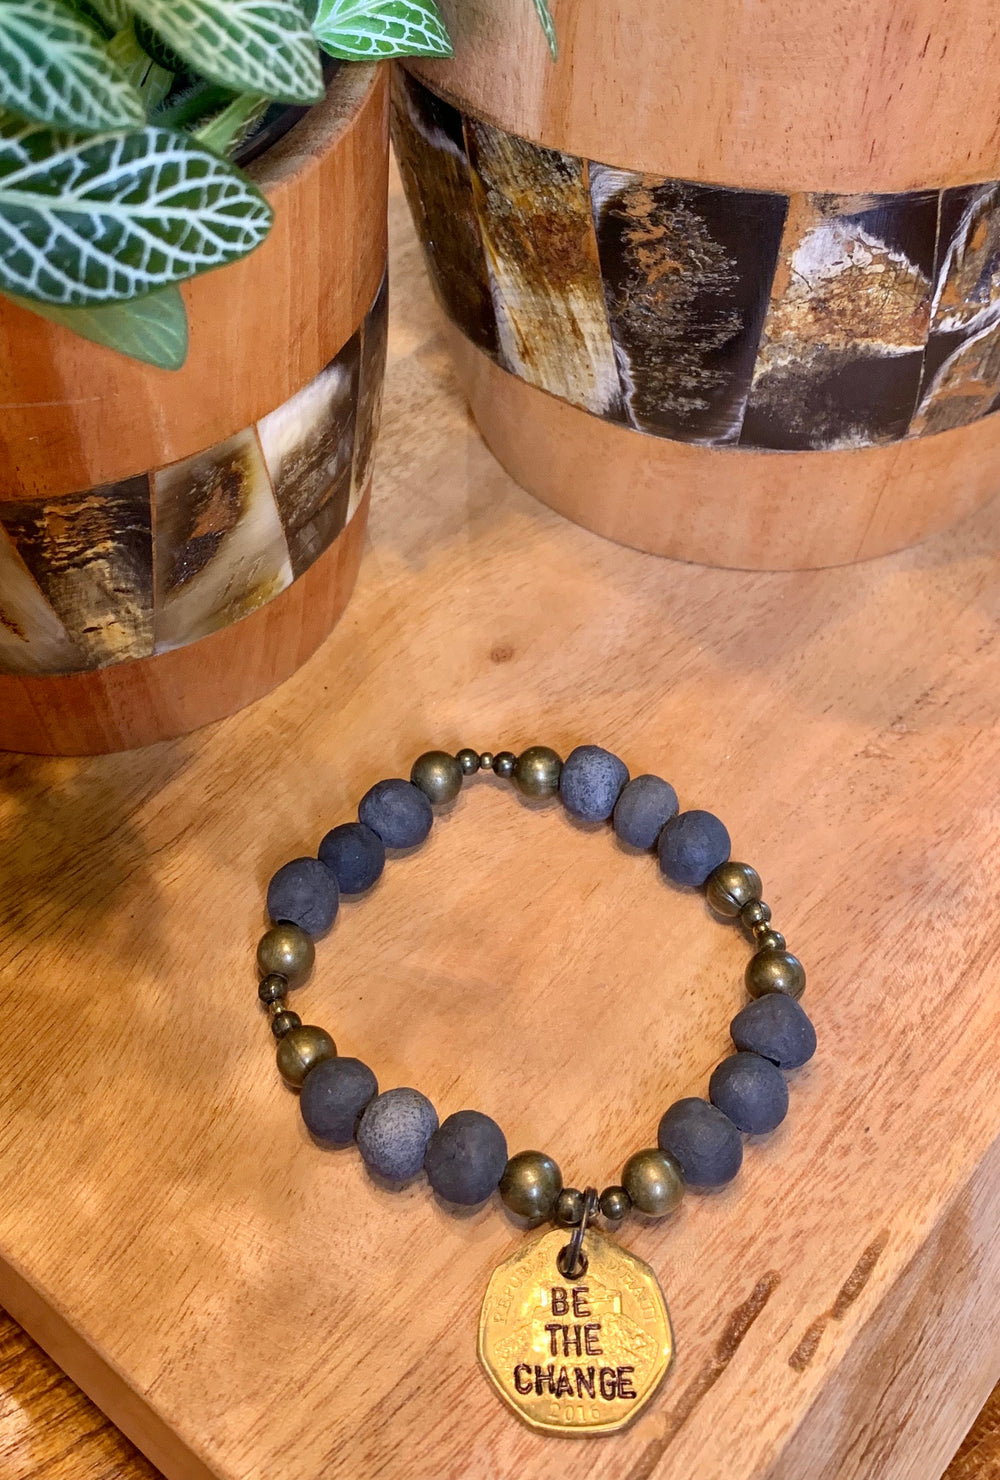 Be the Change Bracelet by Papillon from Haiti